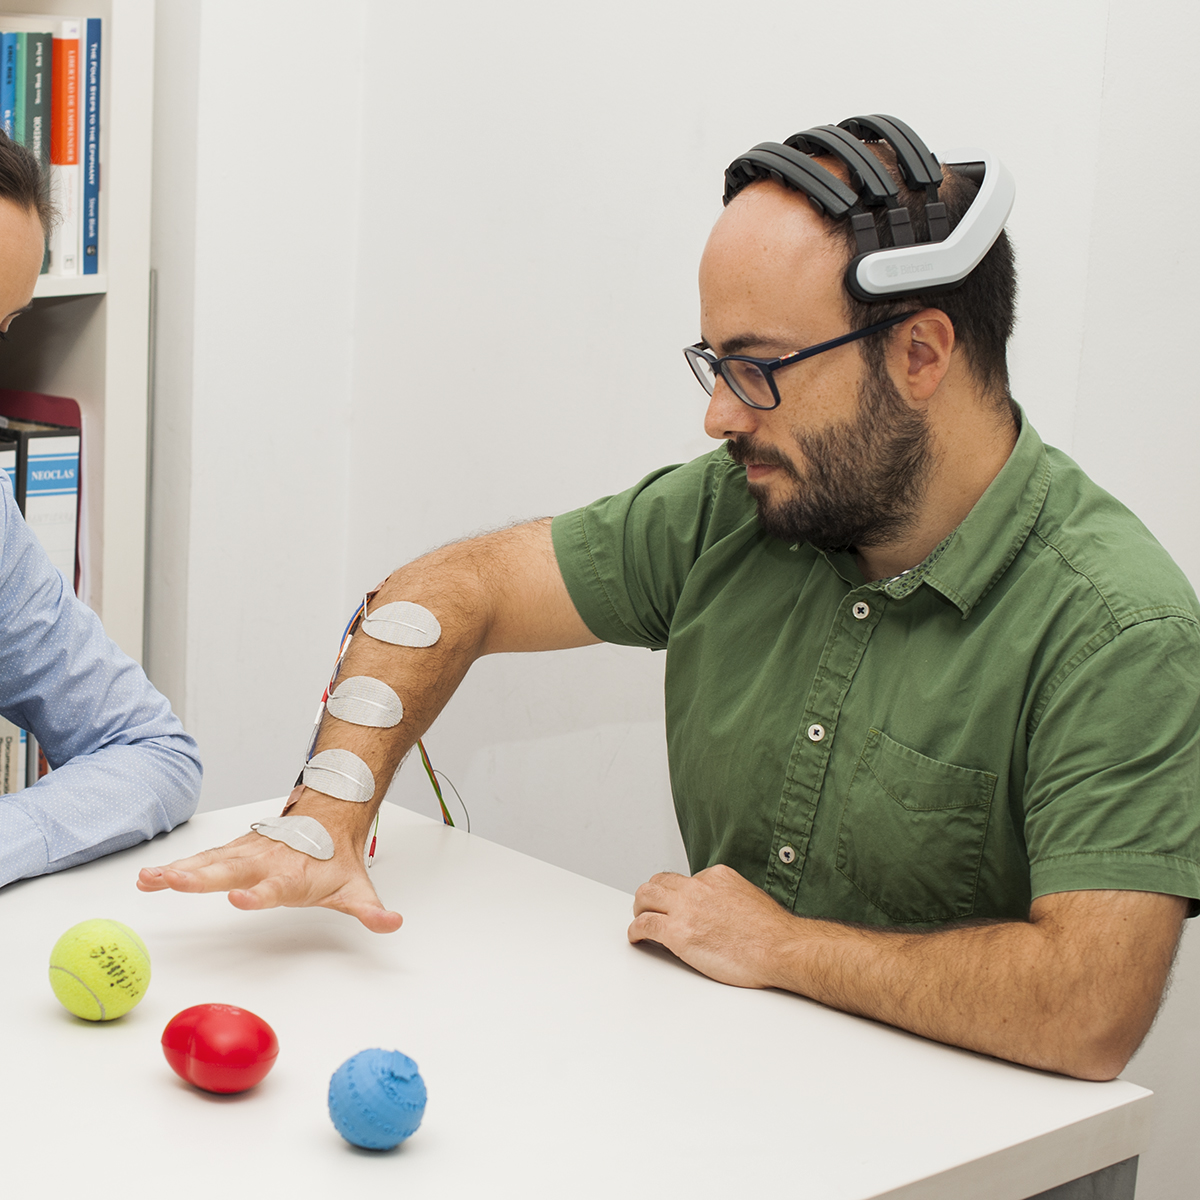 neurorehabilitation EEG device